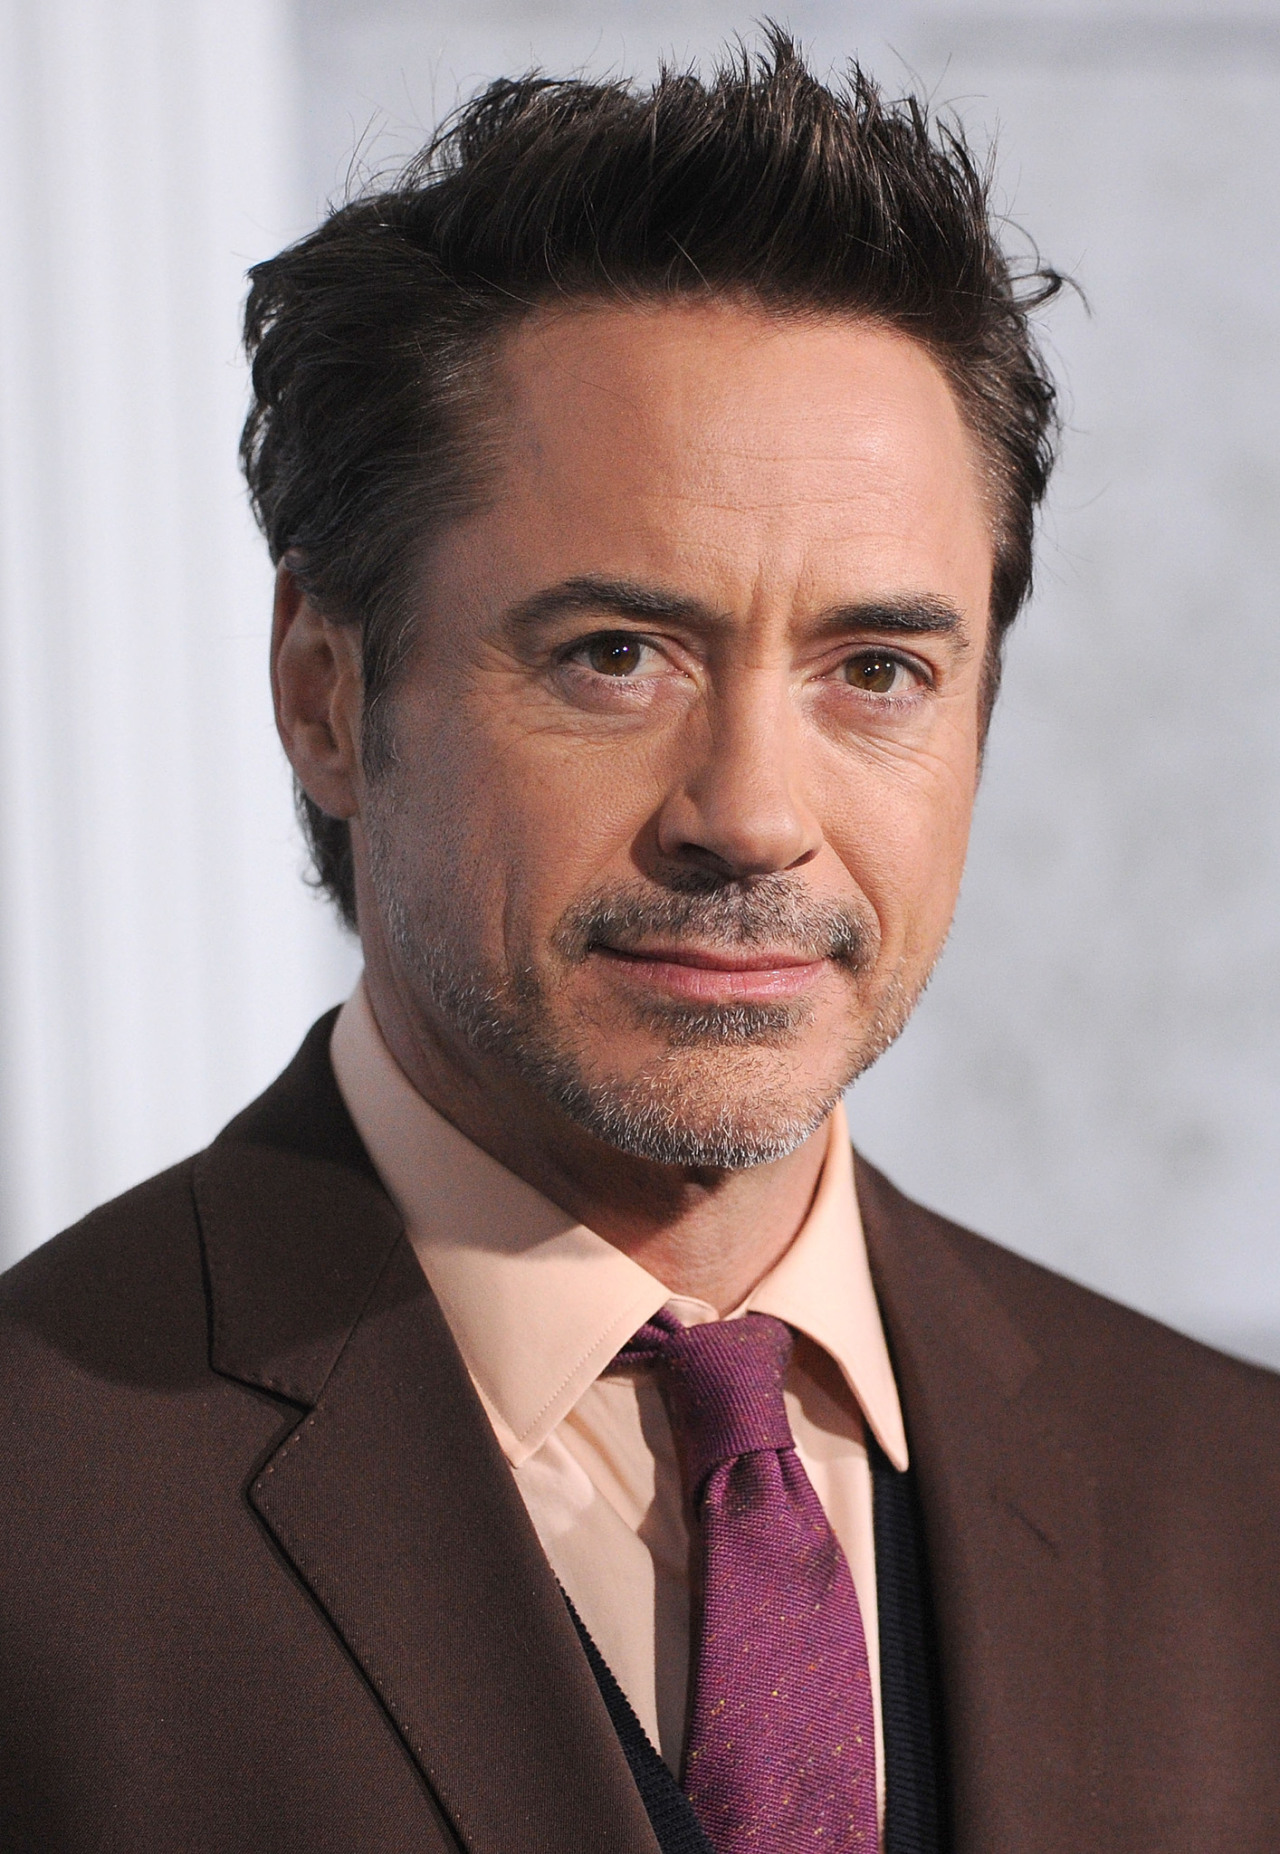 ti5o5o followed Robert Downey Jr. on MovieLaLa